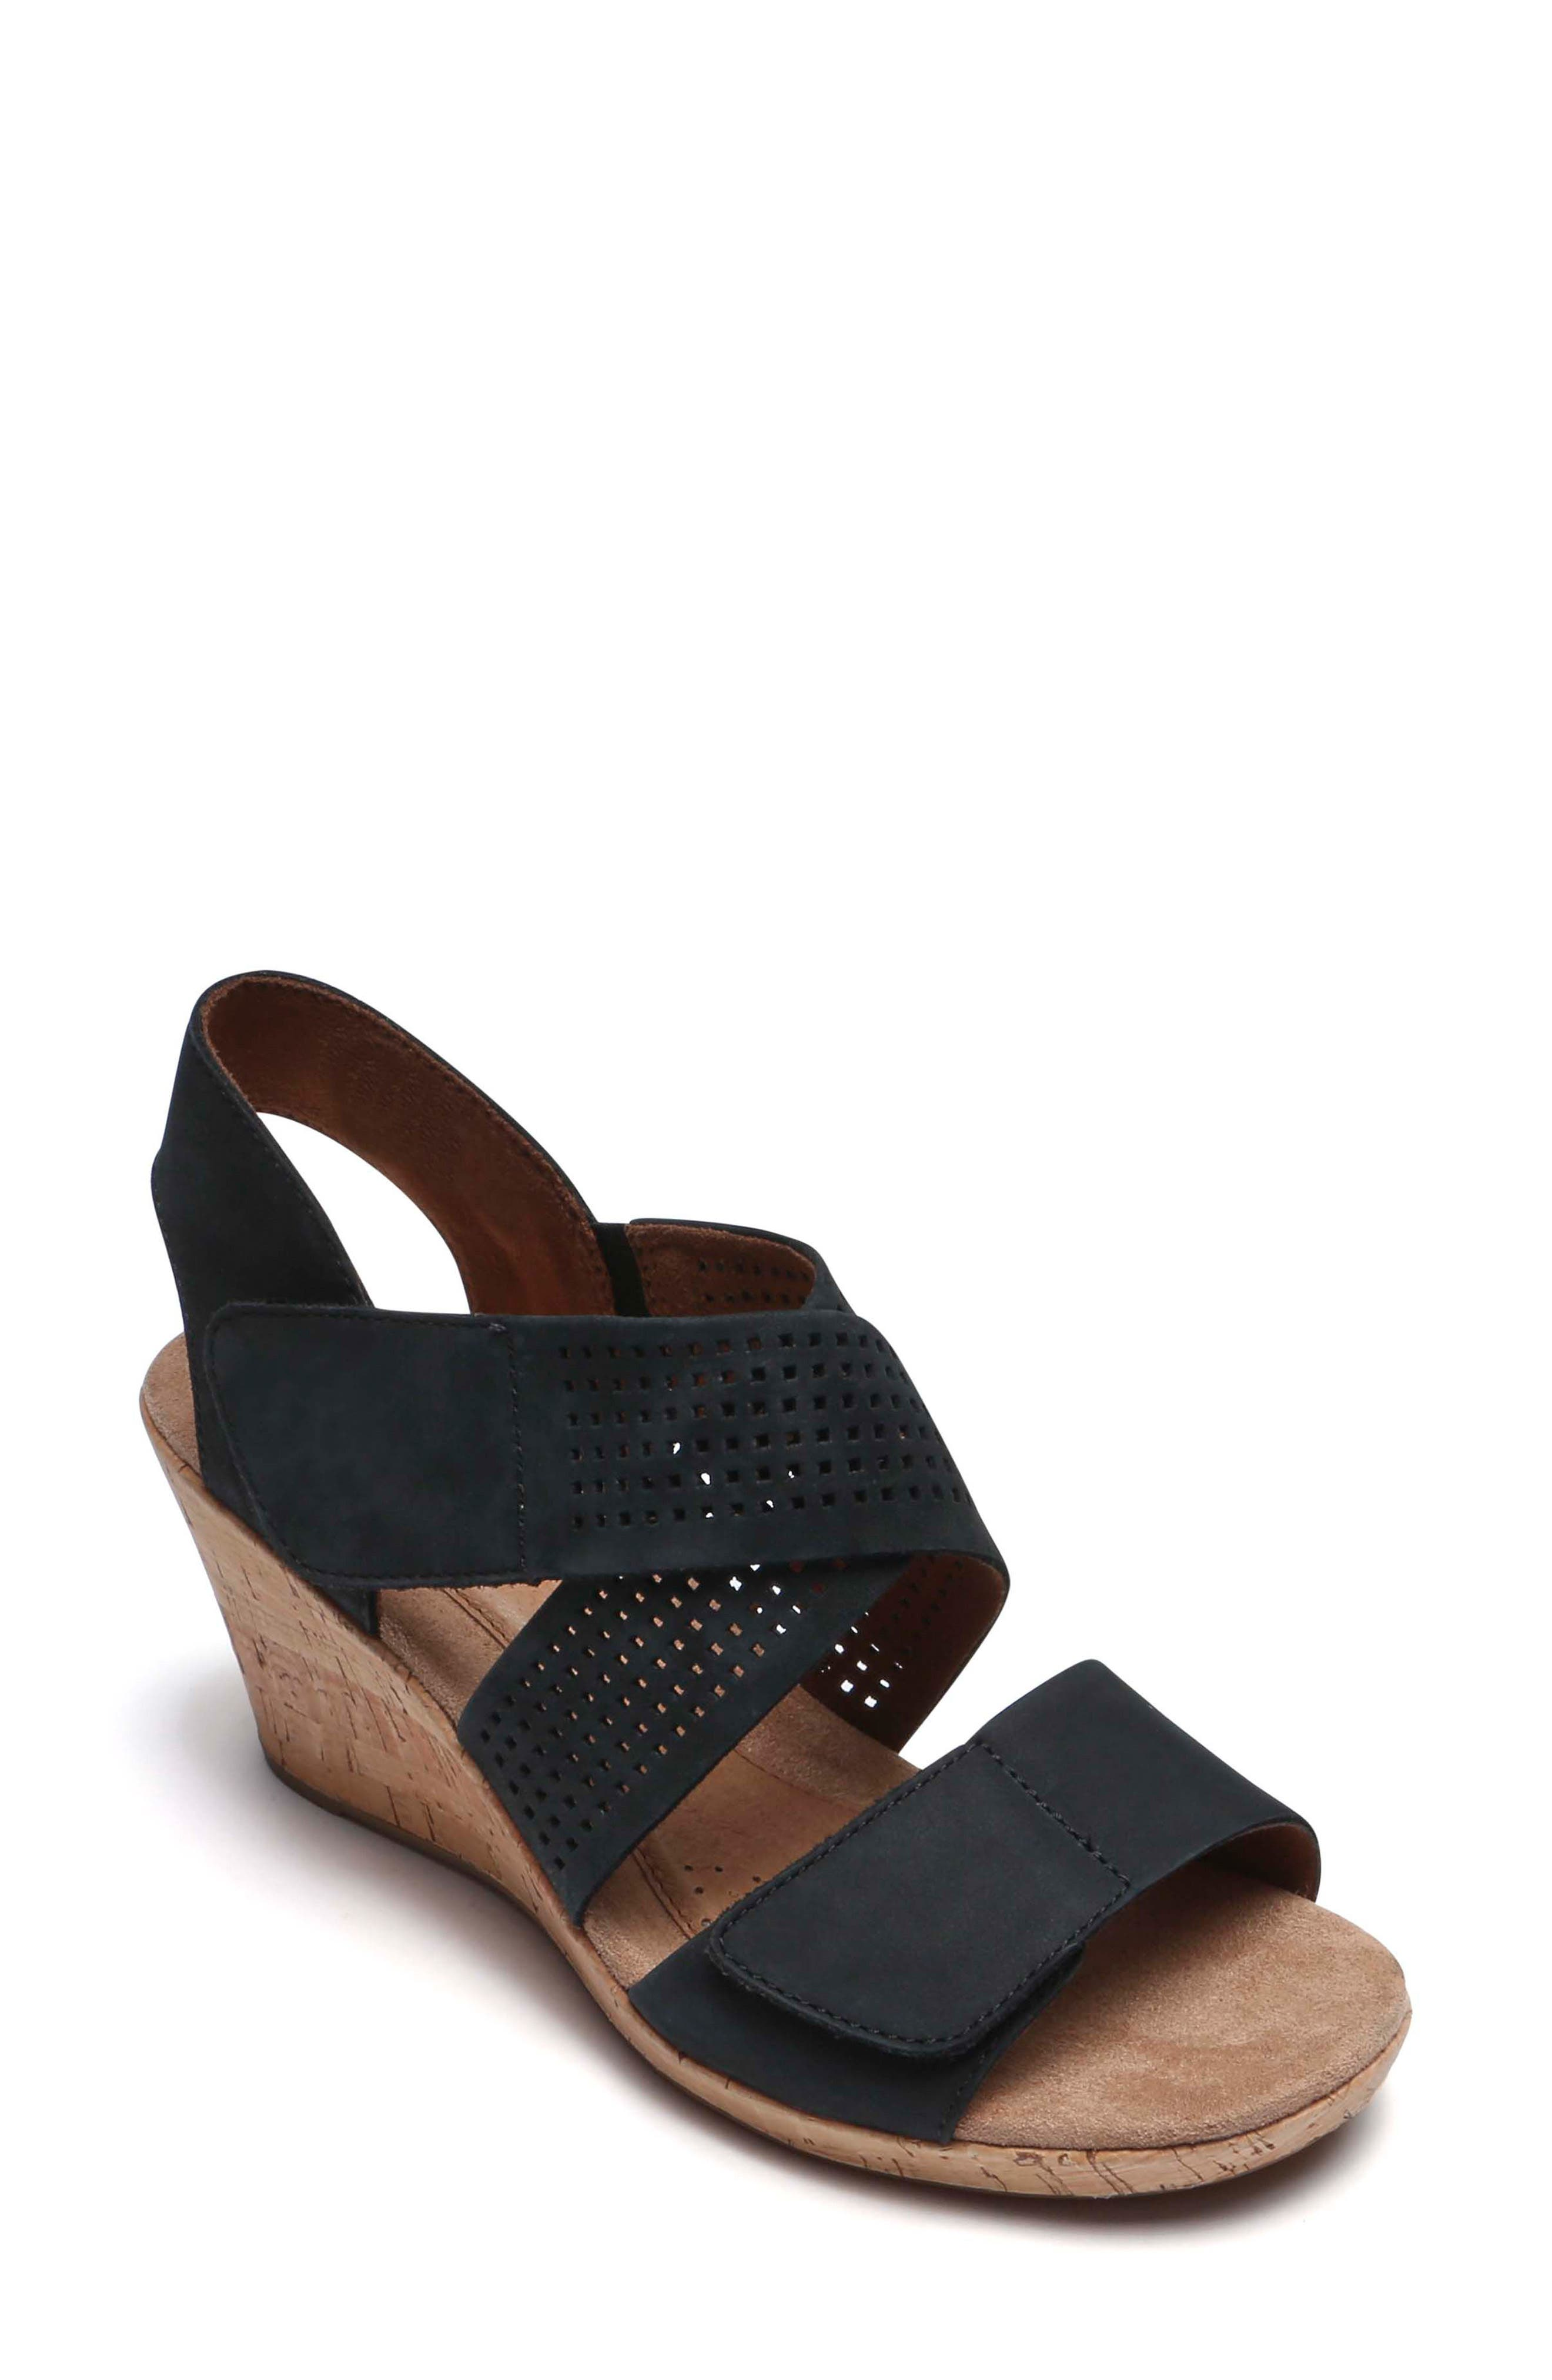 Janna Cross Strap Wedge Sandal,                         Main,                         color, 001